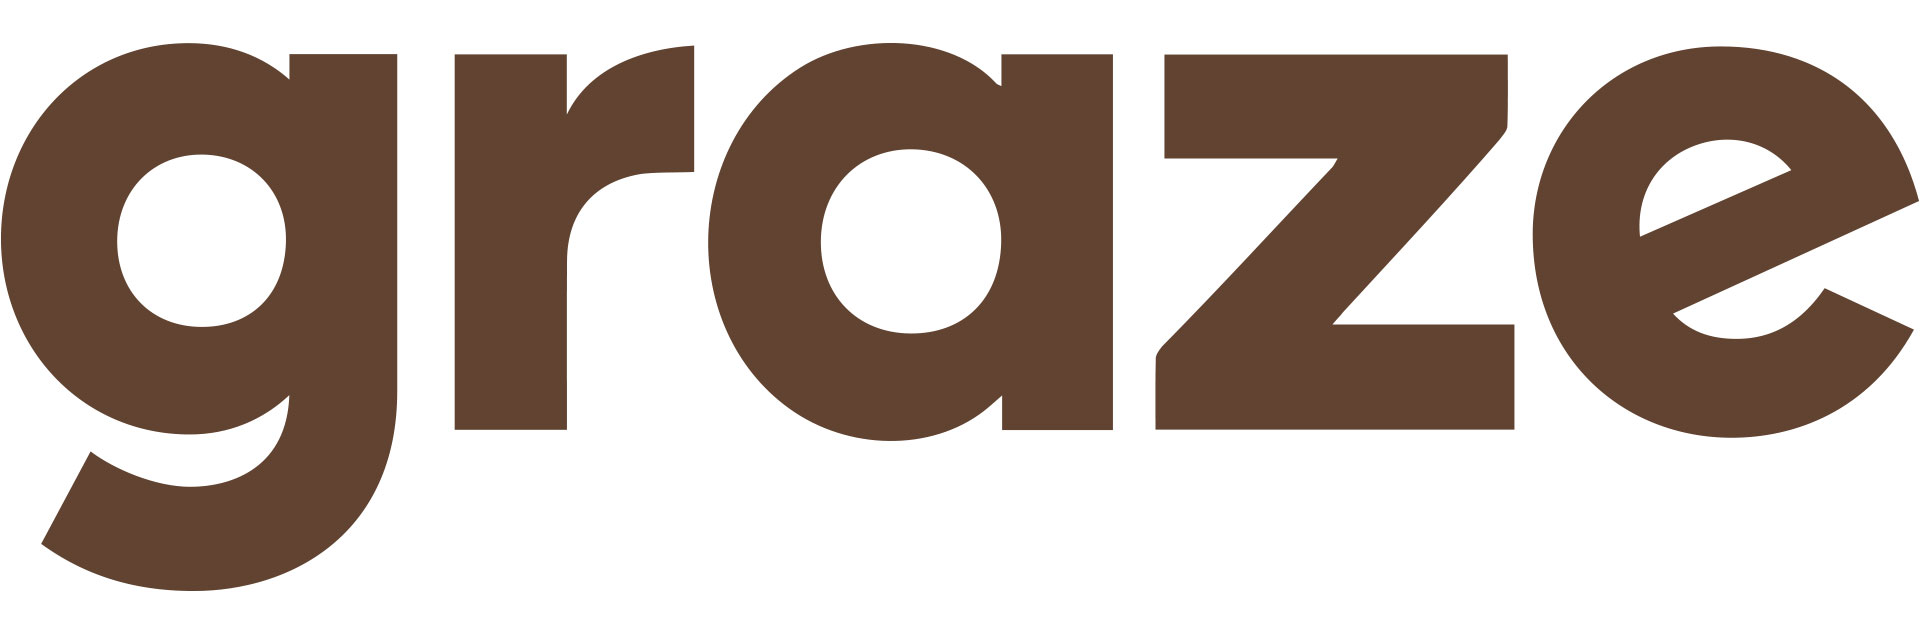 graze_press_logo2_banner.jpg